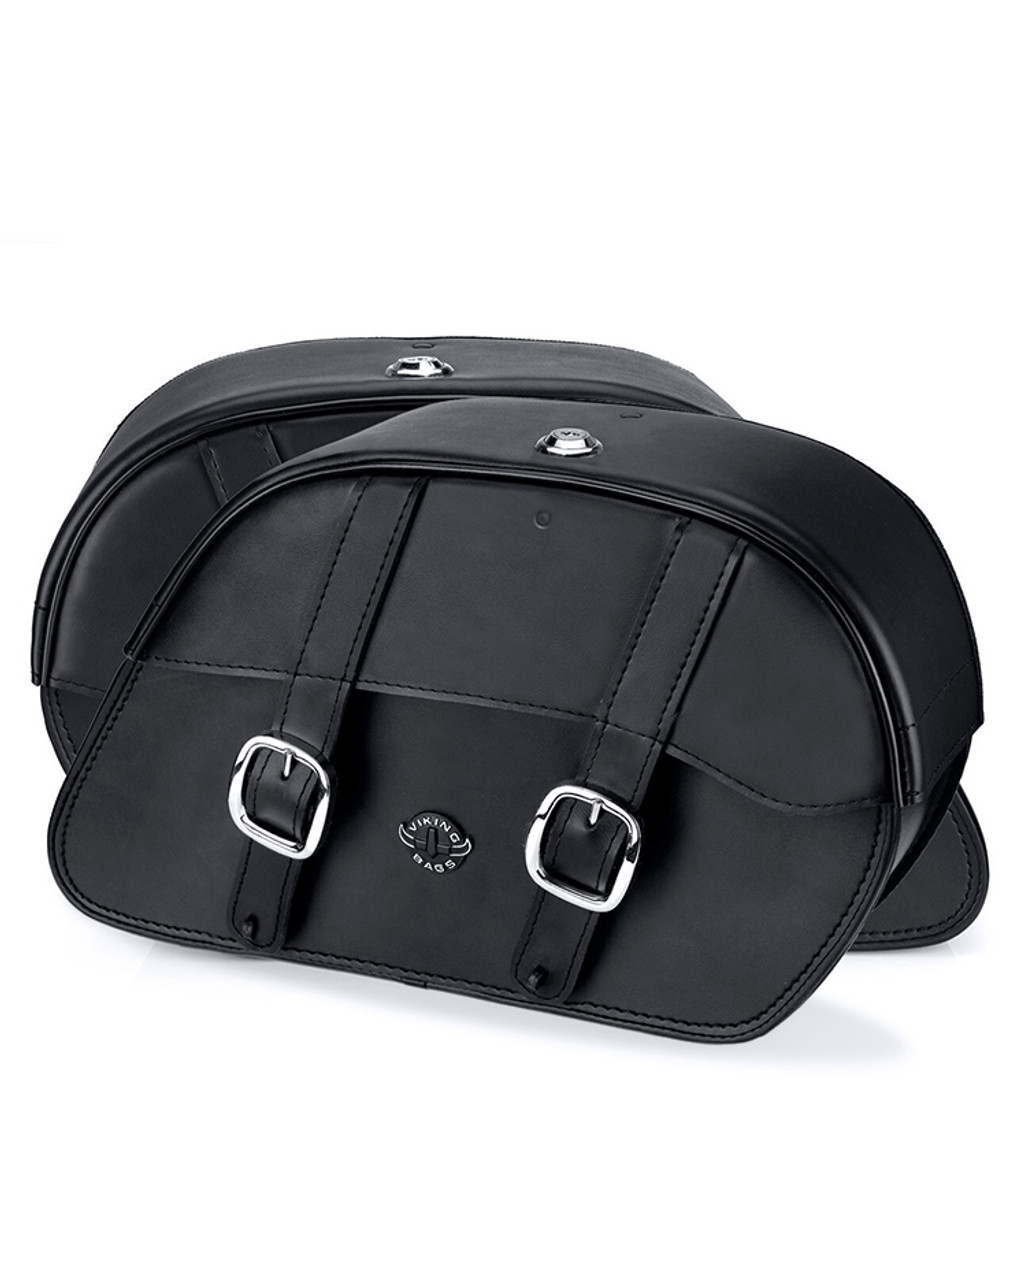 VikingBags Skarner Large Double Strap Leather Motorcycle Saddlebags For Harley Softail Custom FXSTC Both Bags View